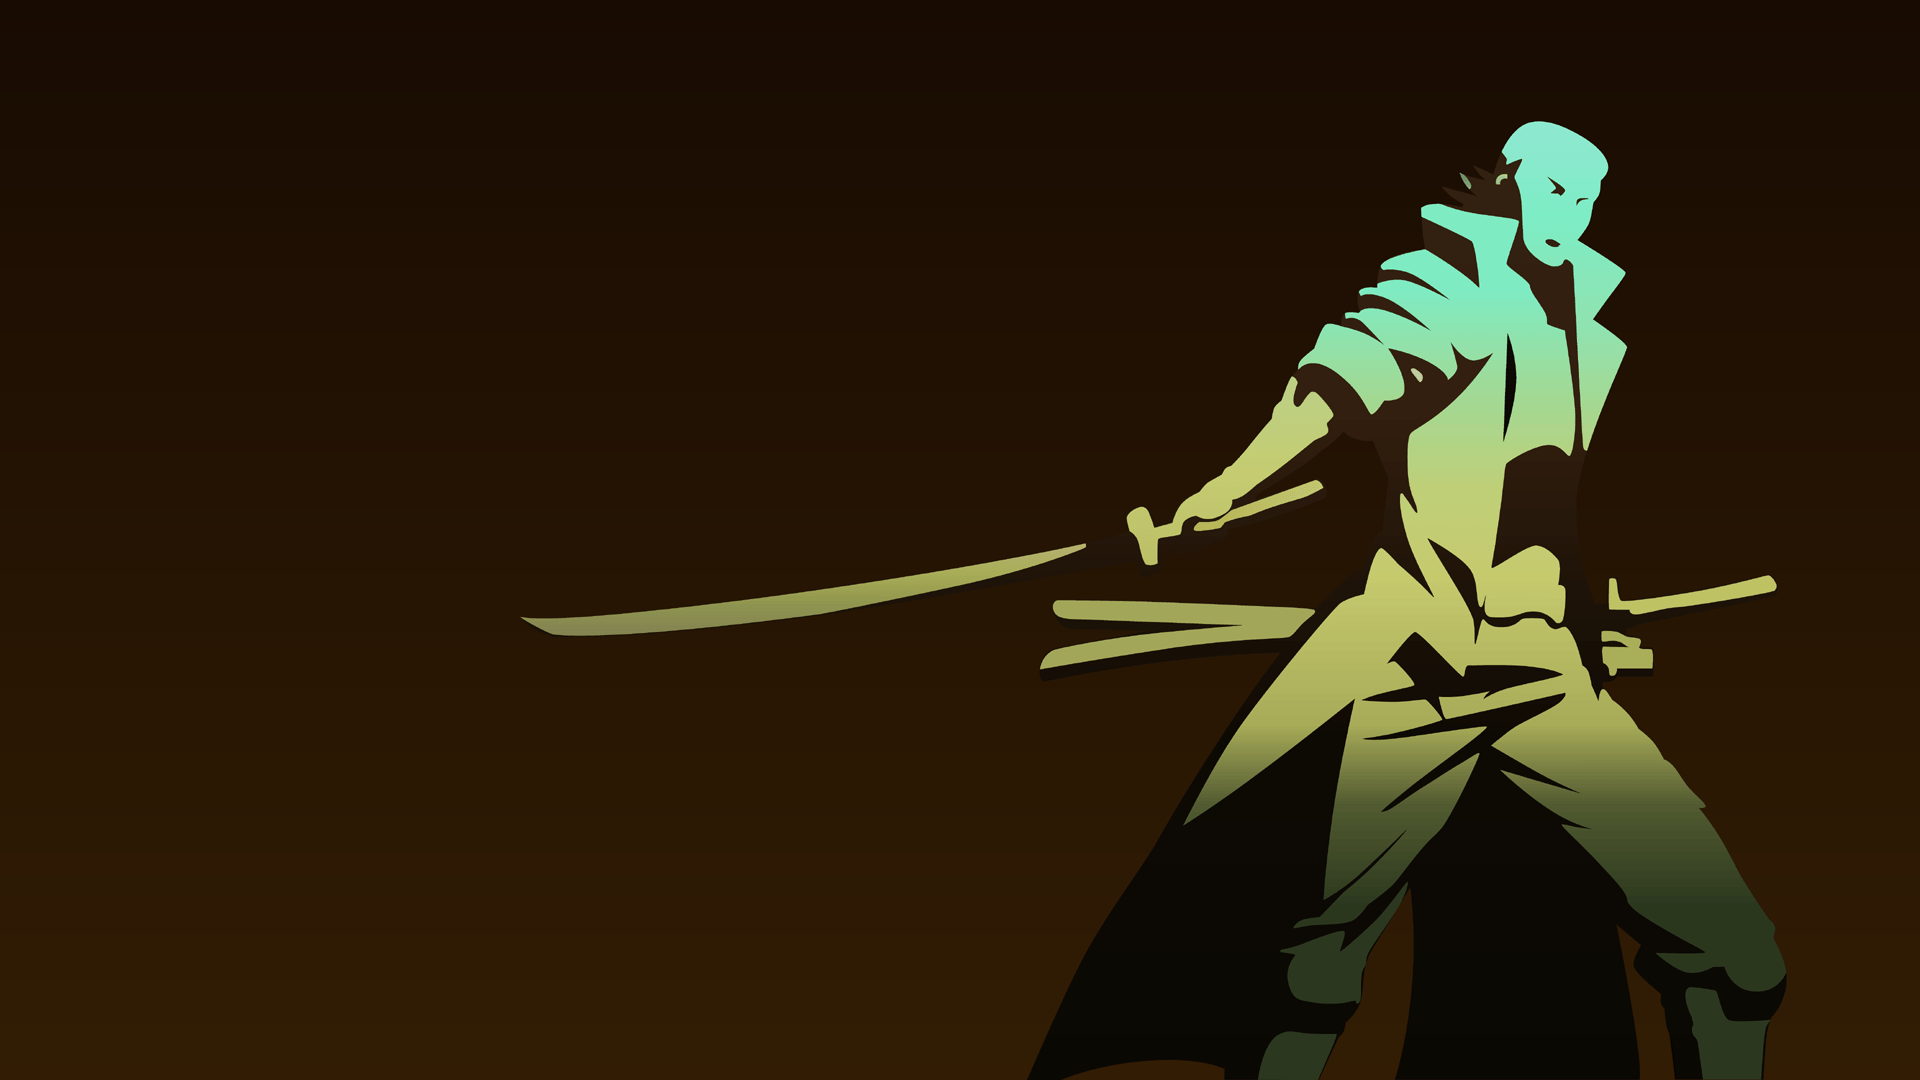 samurai katana wallpaper hd - photo #25